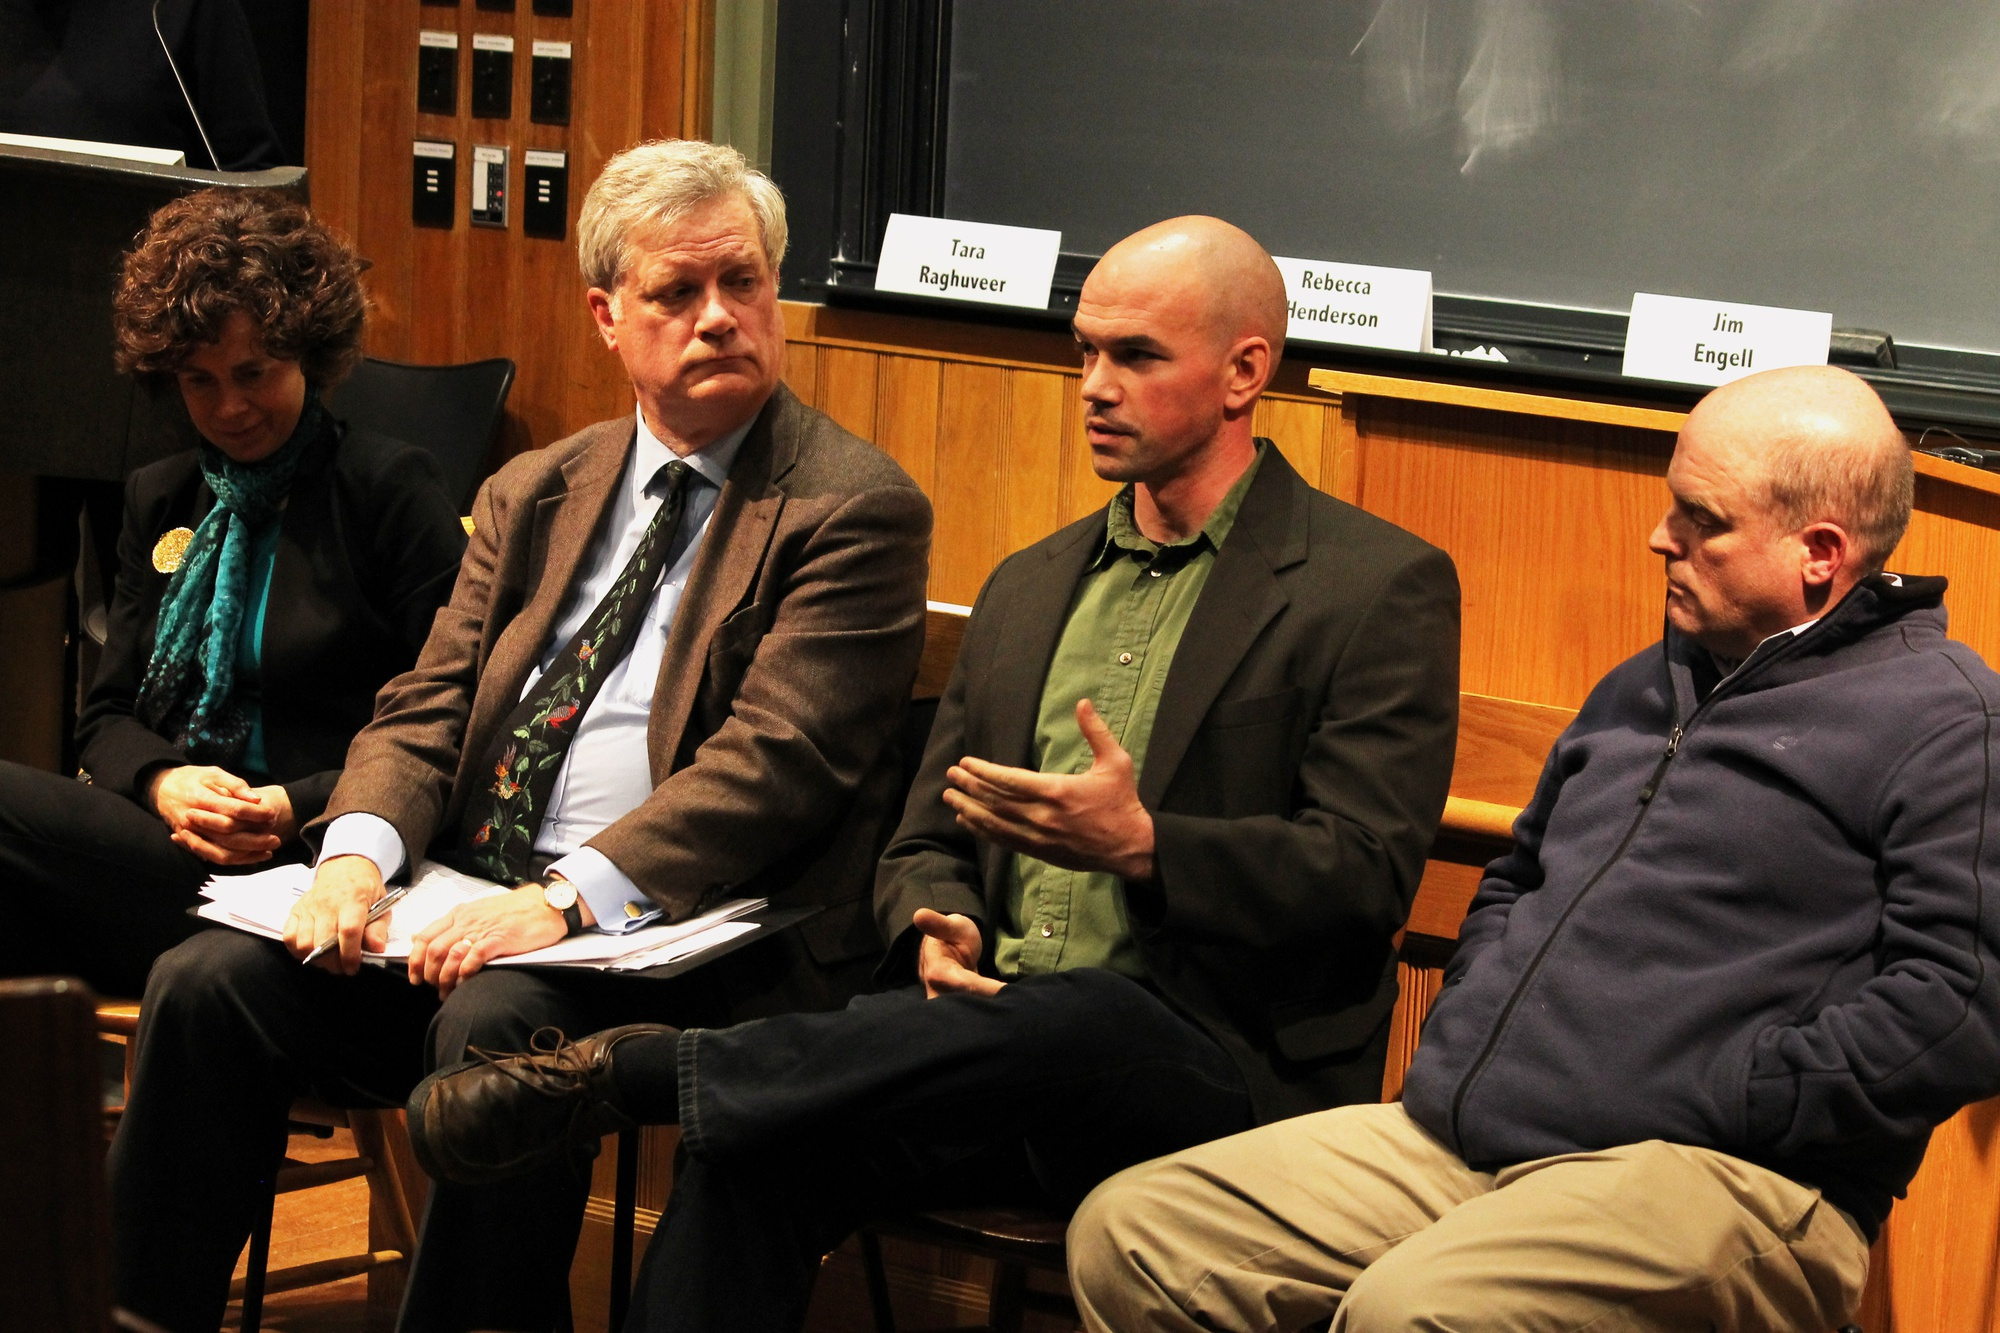 Tim DeChristopher, climate activist and Harvard Divinity School student, represents the student voice among a panel of Harvard professors at the Fossil Fuel Divestment Forum in Sever Hall on Friday.